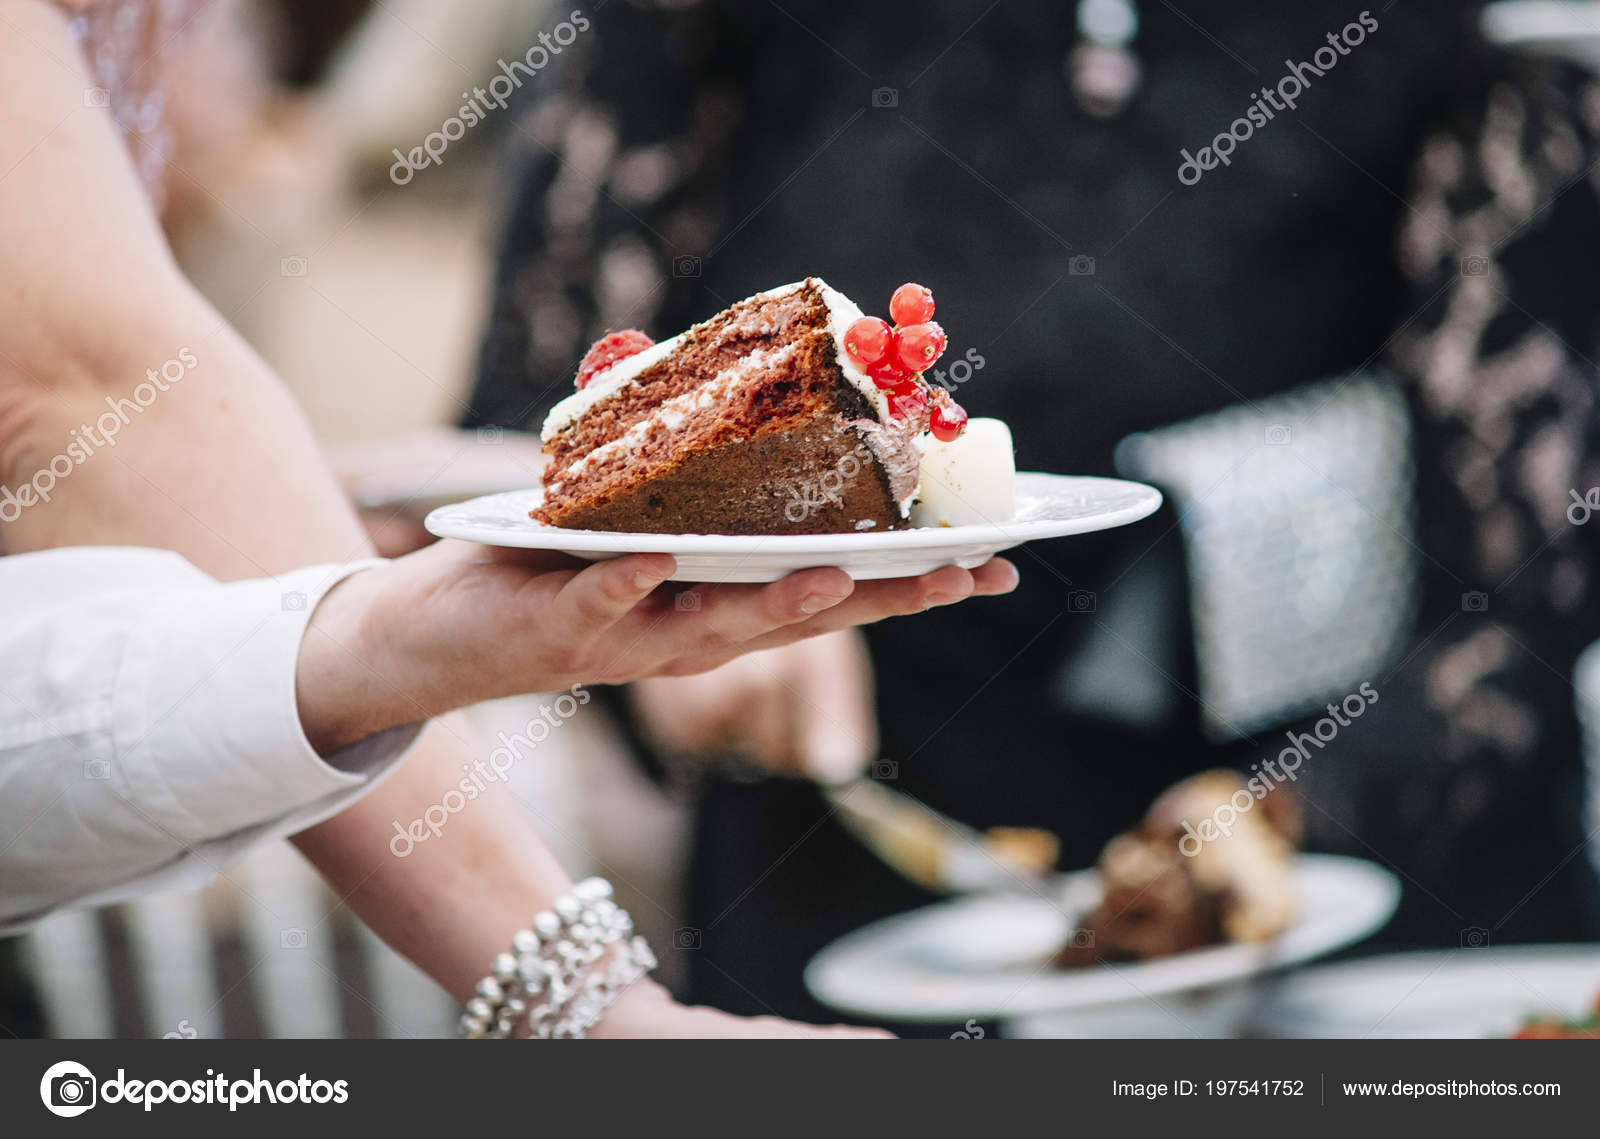 Hand holding plates of cake u2014 Stock Photo & hand holding plates of cake u2014 Stock Photo © clementetinin #197541752